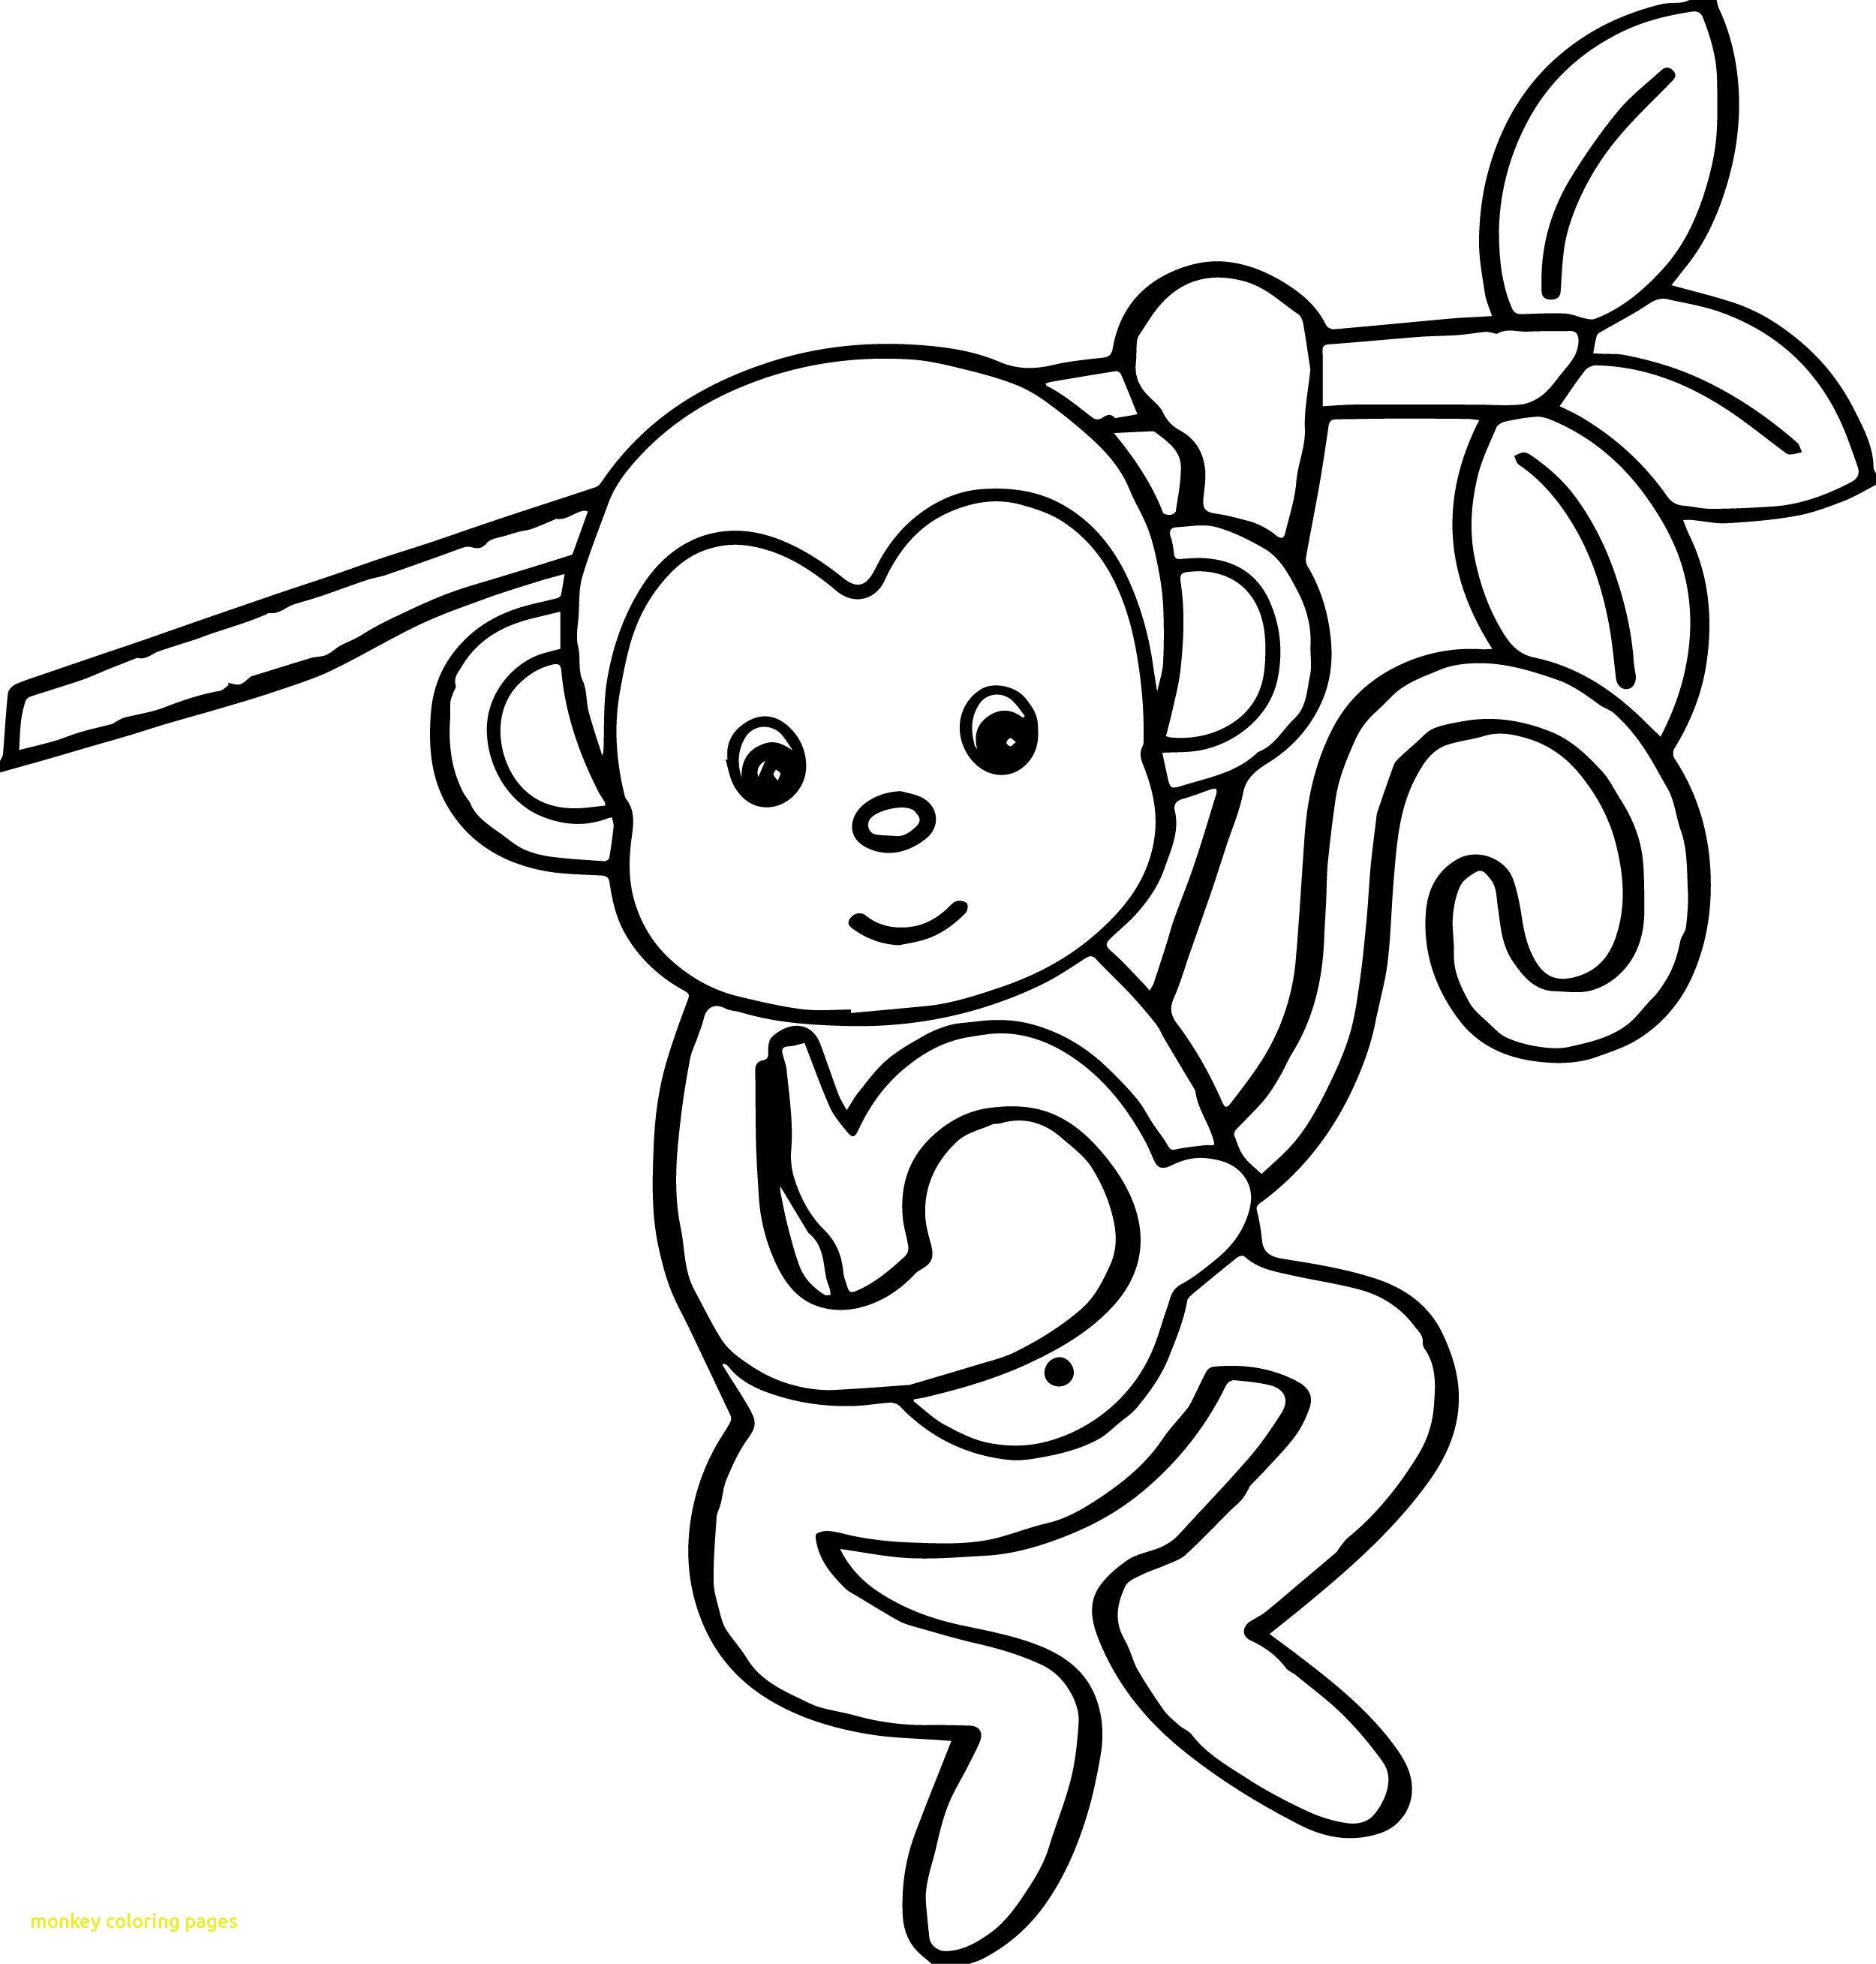 2500x2617 Monkey Coloring Pages With Cartoon Animals Kids Monkey Coloring